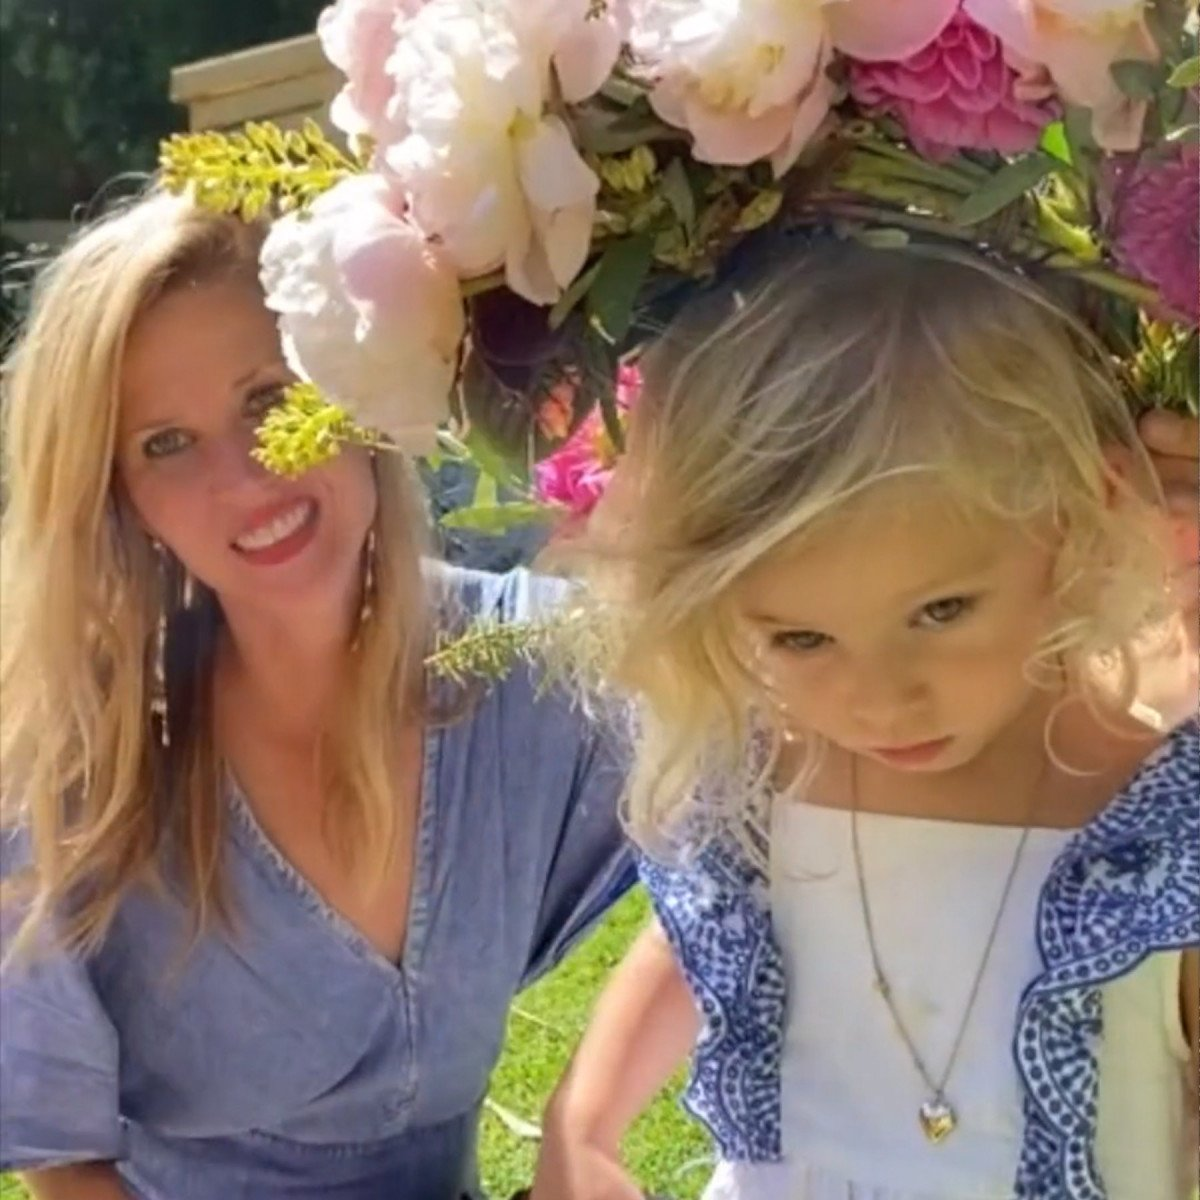 At Home with Wild & Gorgeous - Making Flower Crowns